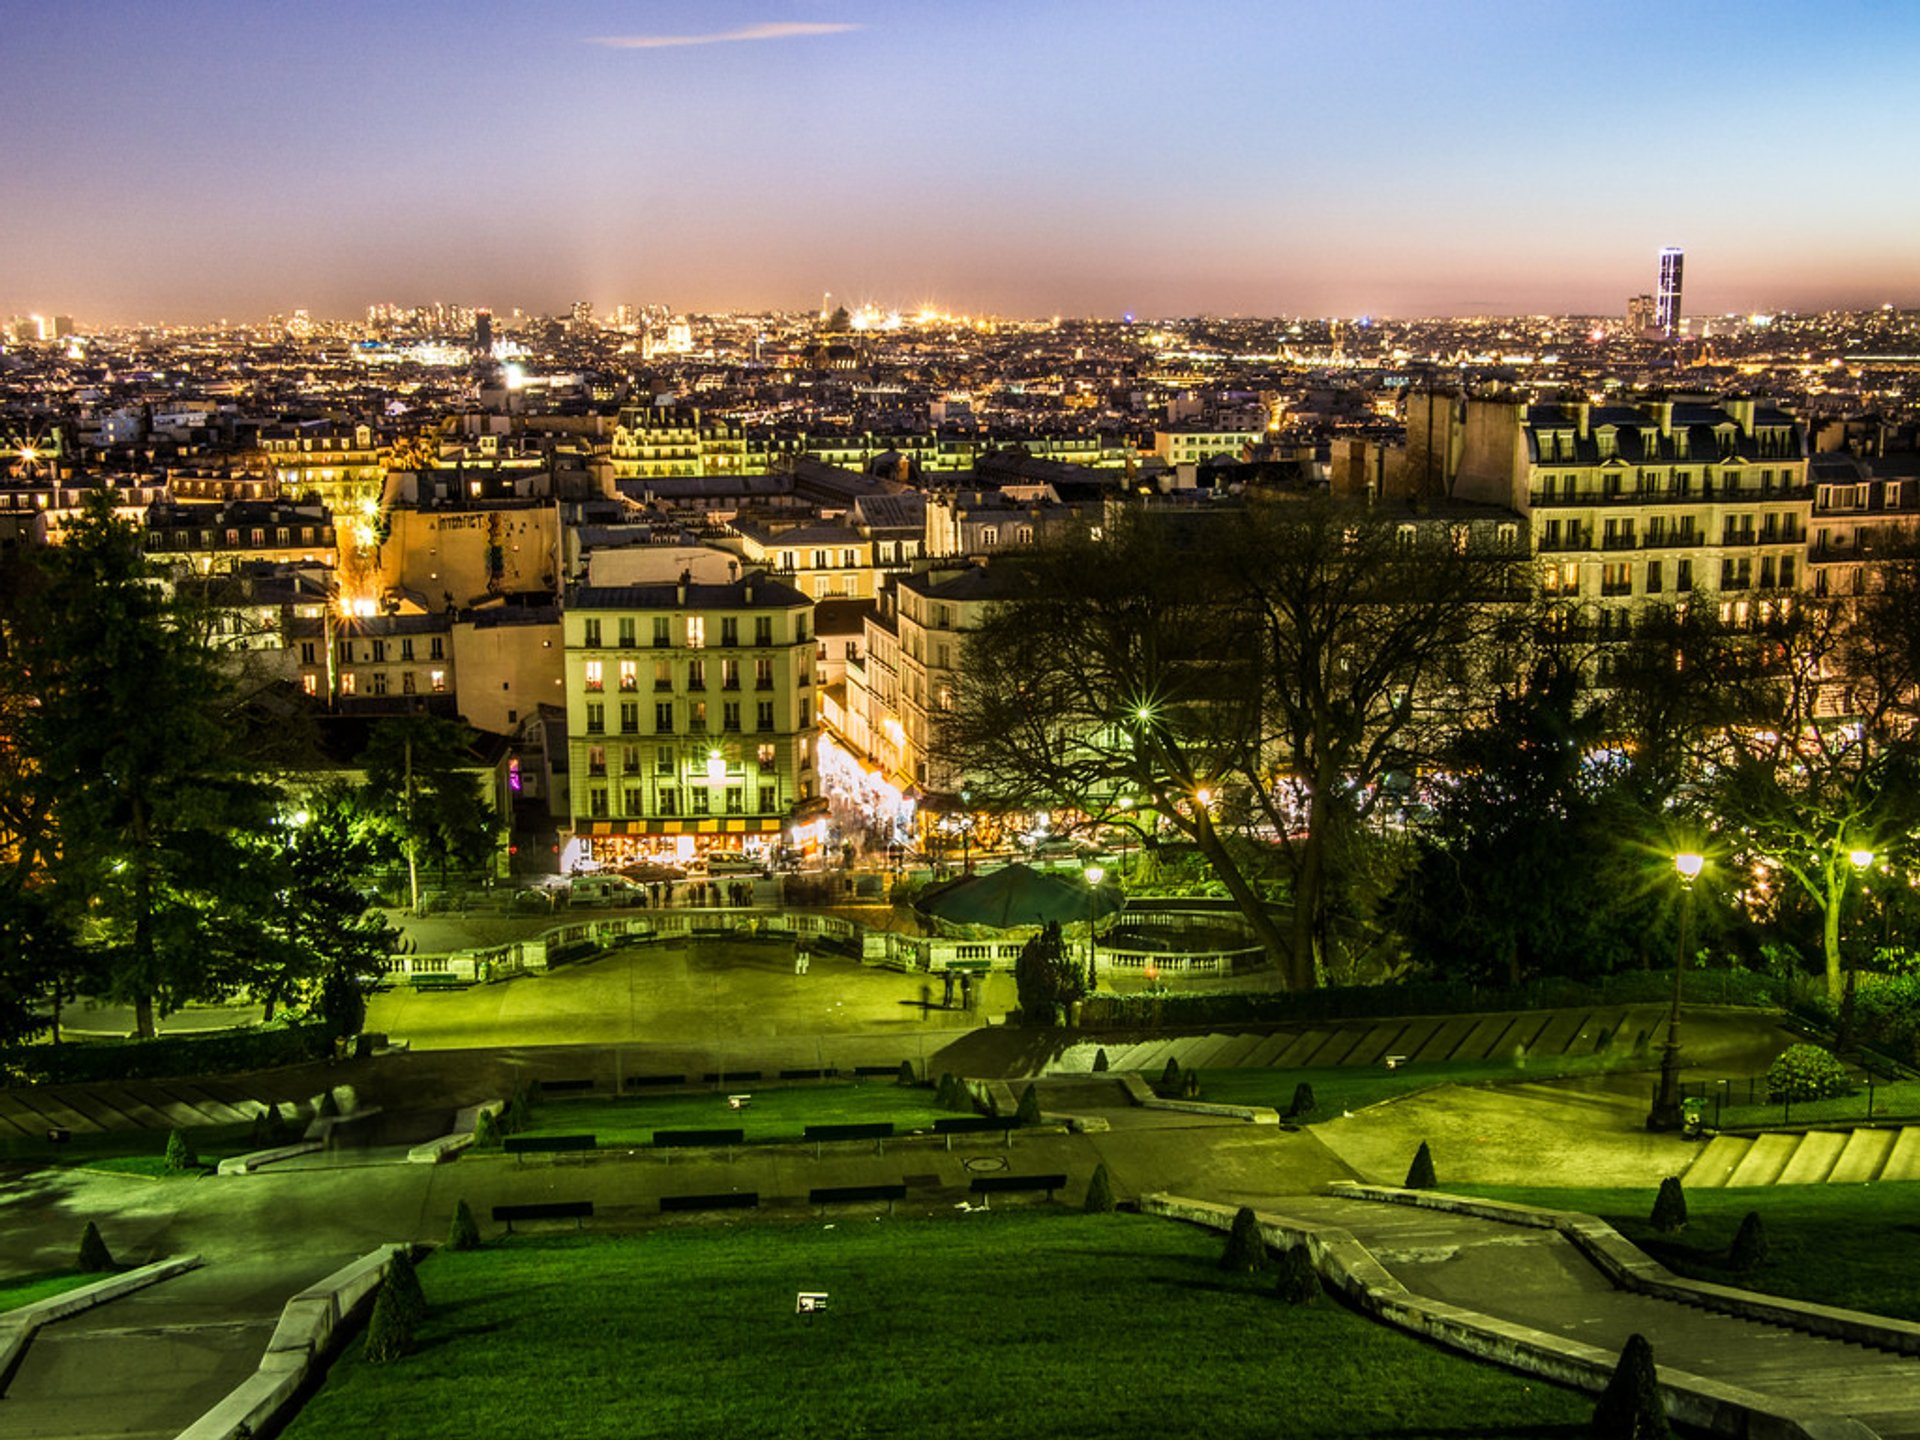 The view from the hill of Sacré-Cœur Basilica 2020